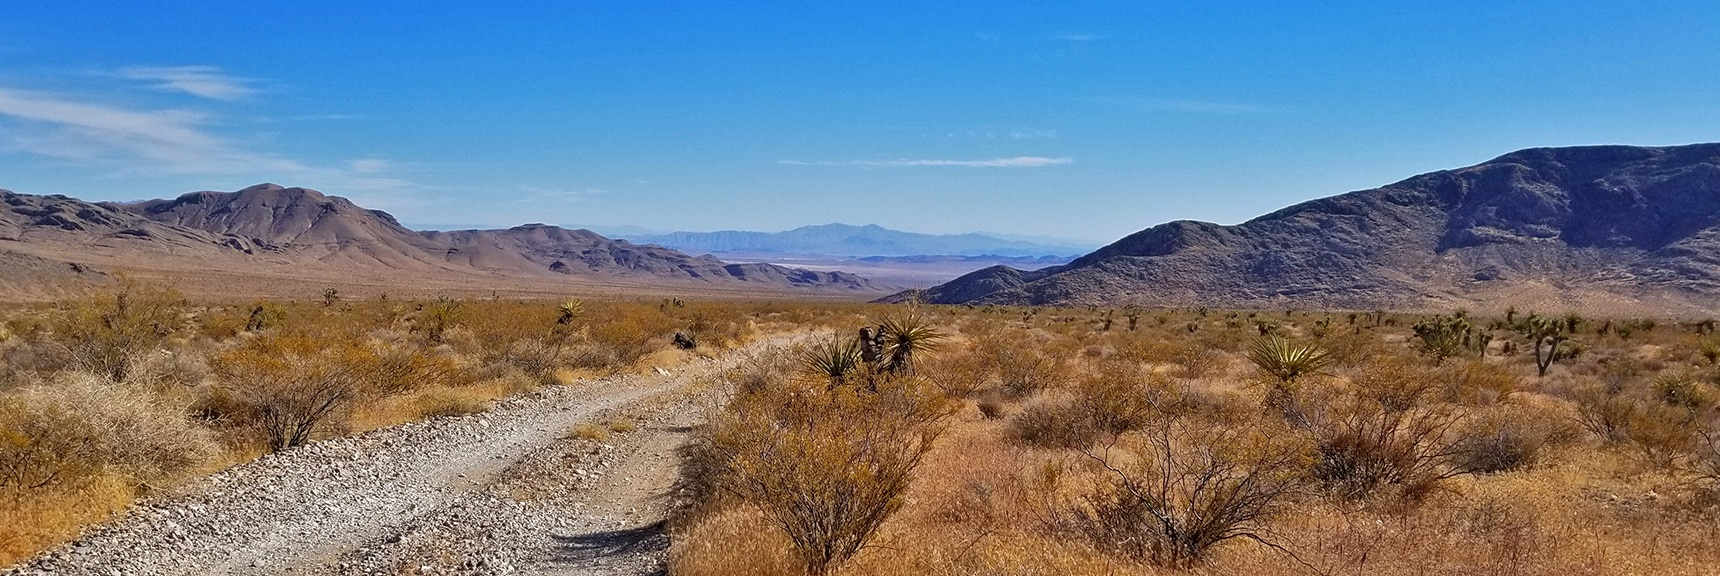 View Down Gass Peak Road Toward Hwy 93 and Valley of Fire Area | Gass Peak Road Circuit | Desert National Wildlife Refuge | Nevada